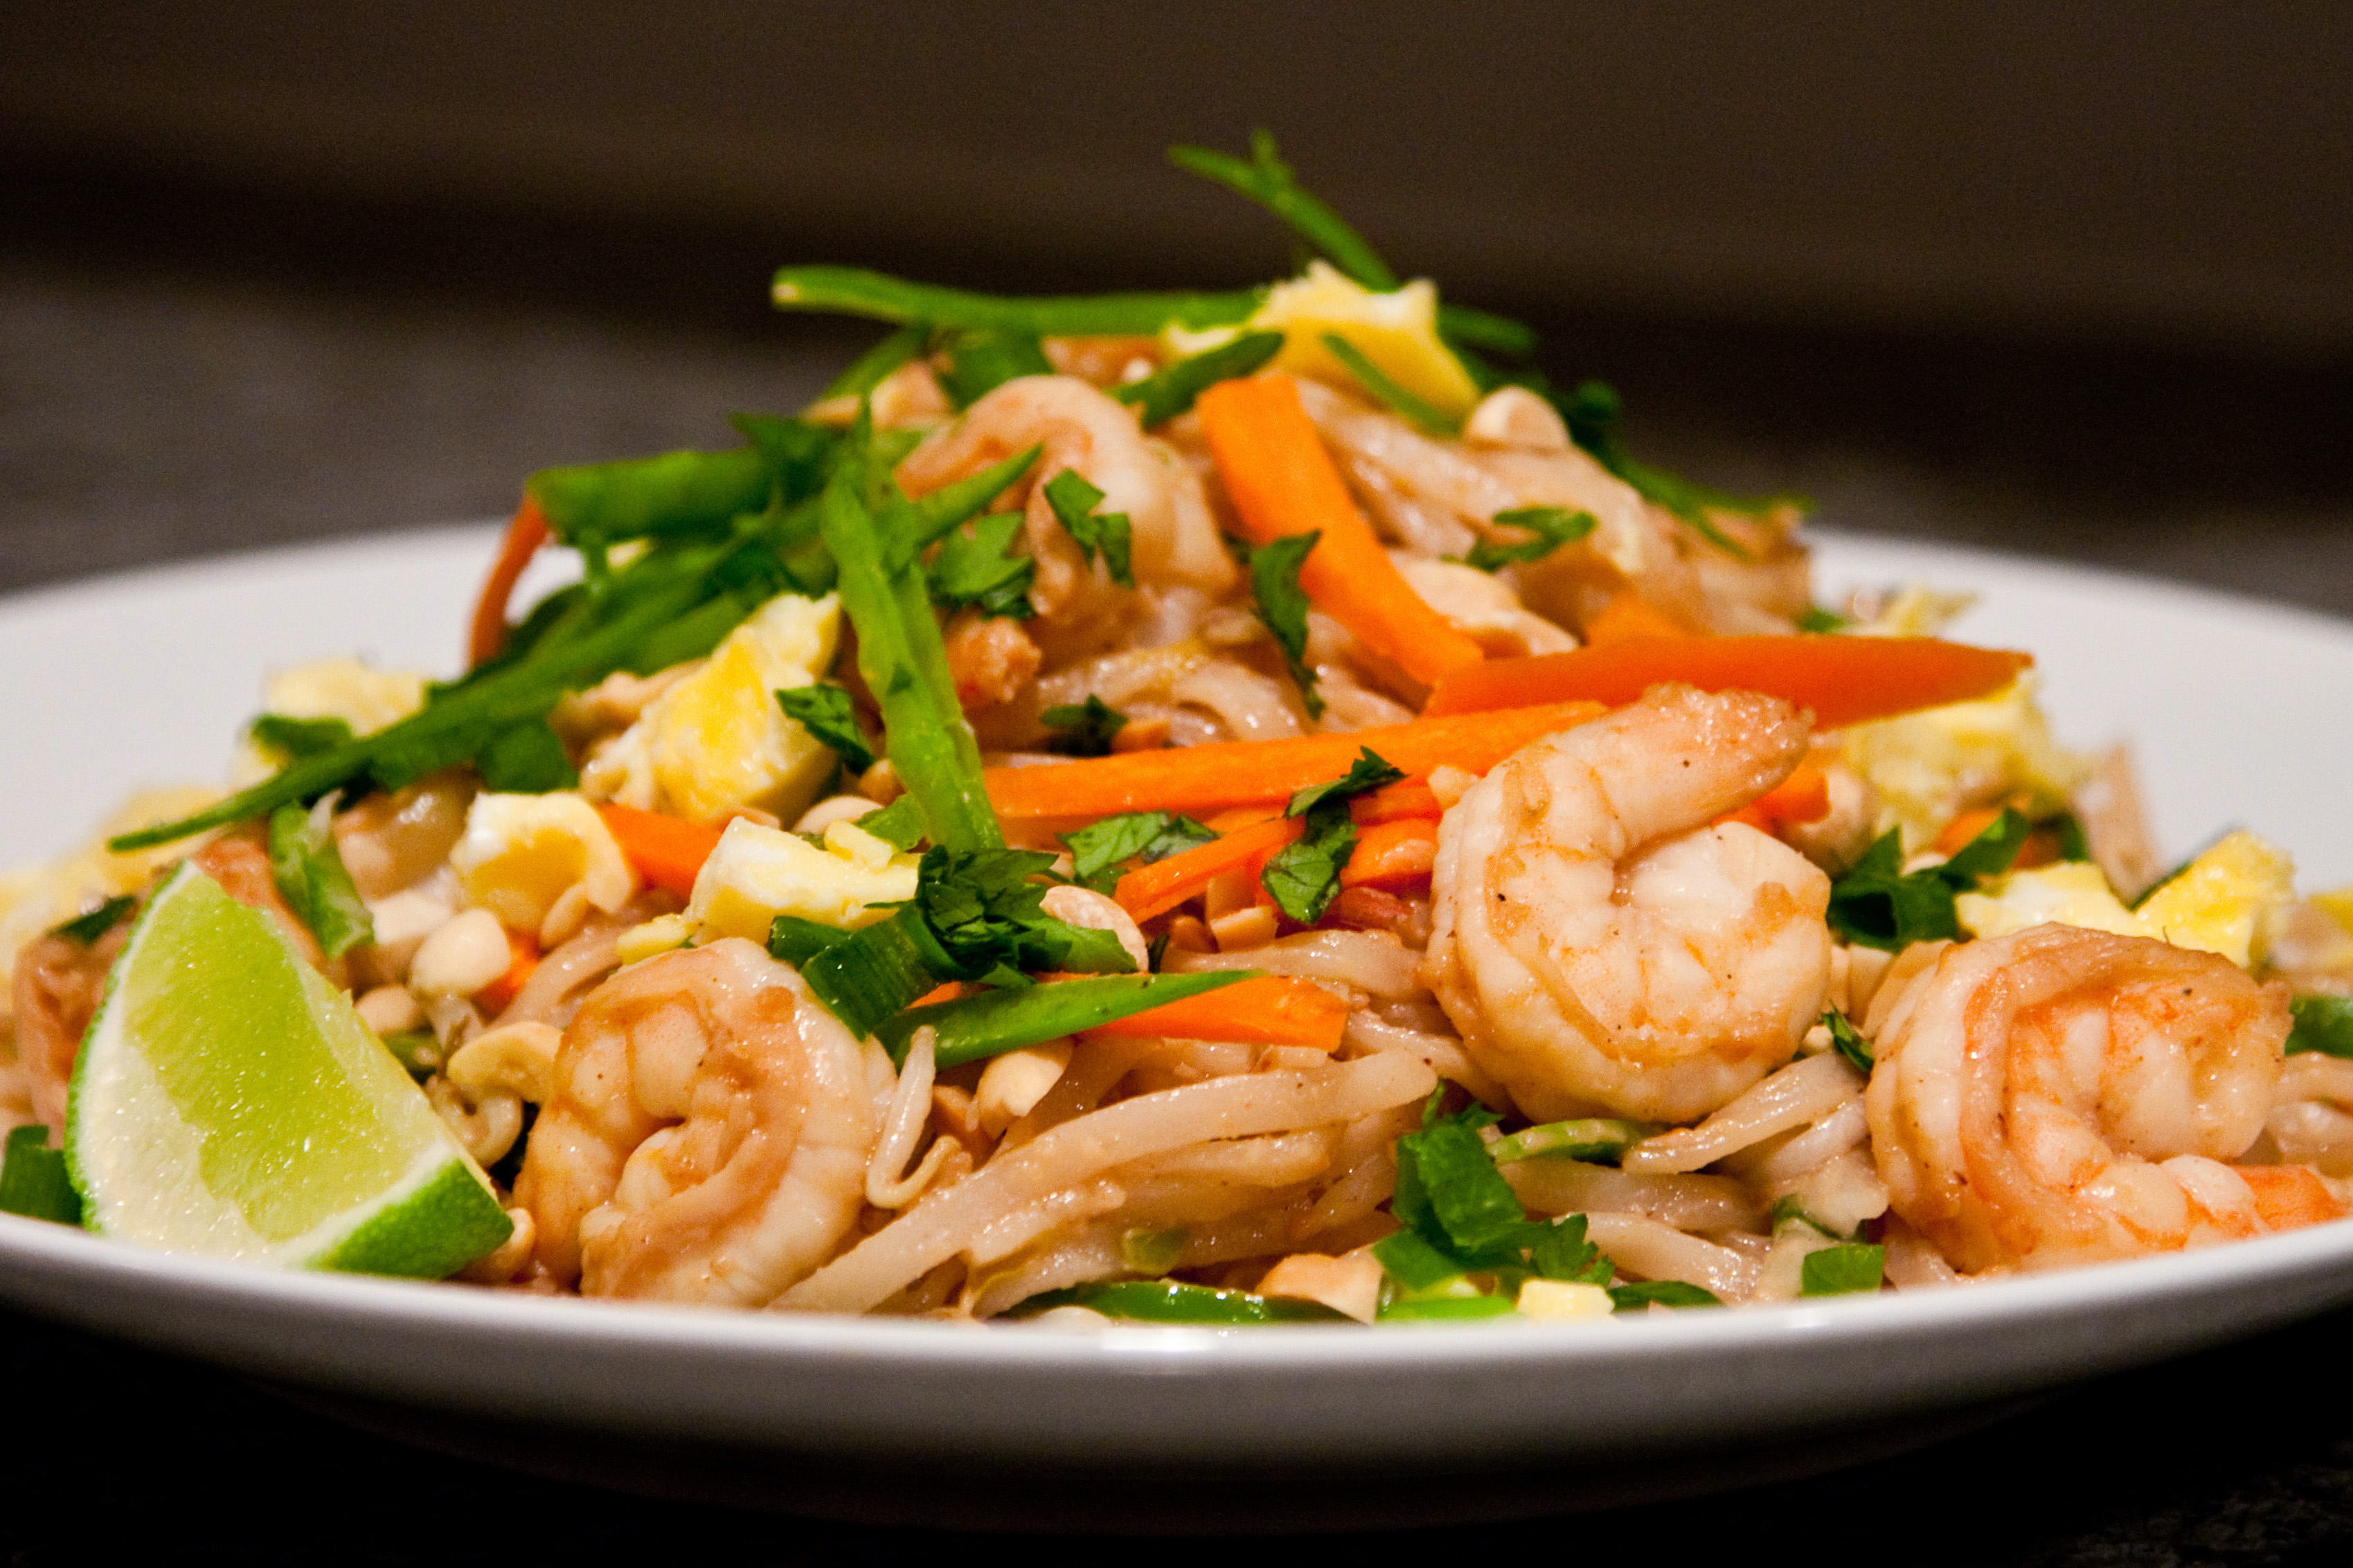 Pad thai cucina di carrie for About italian cuisine